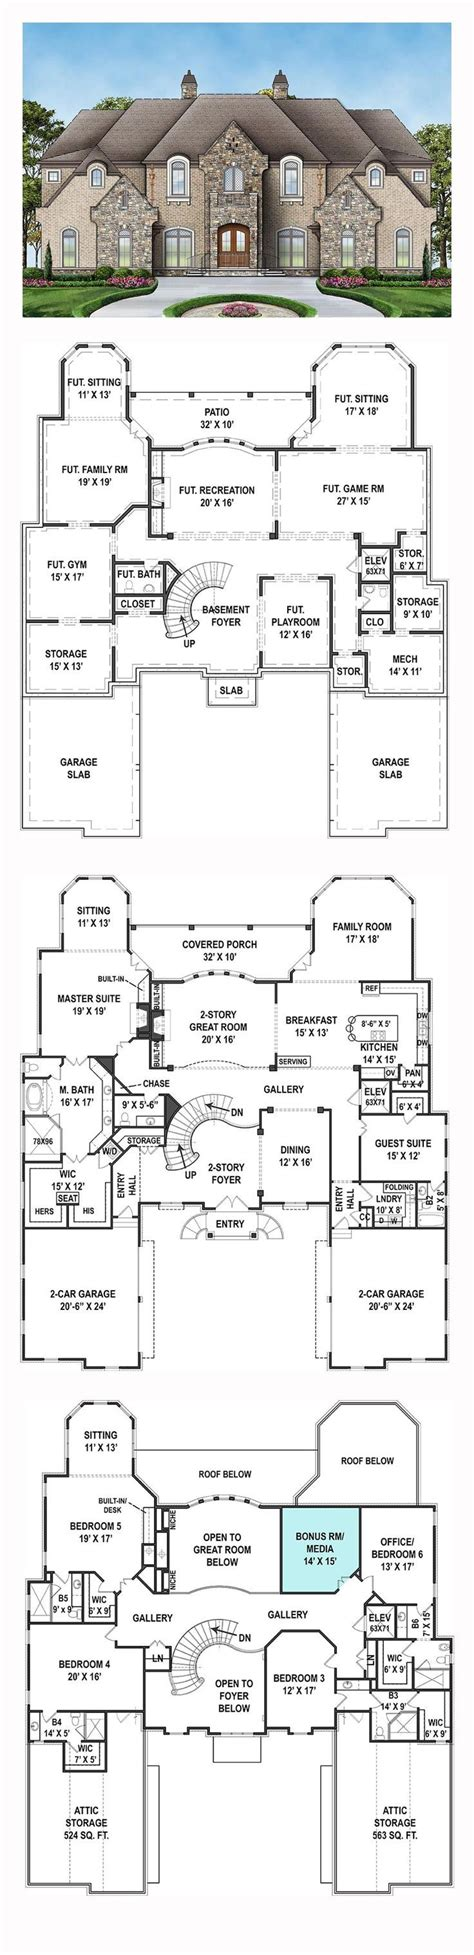 6 bedroom house floor plans best 25 new house plans ideas on house plans